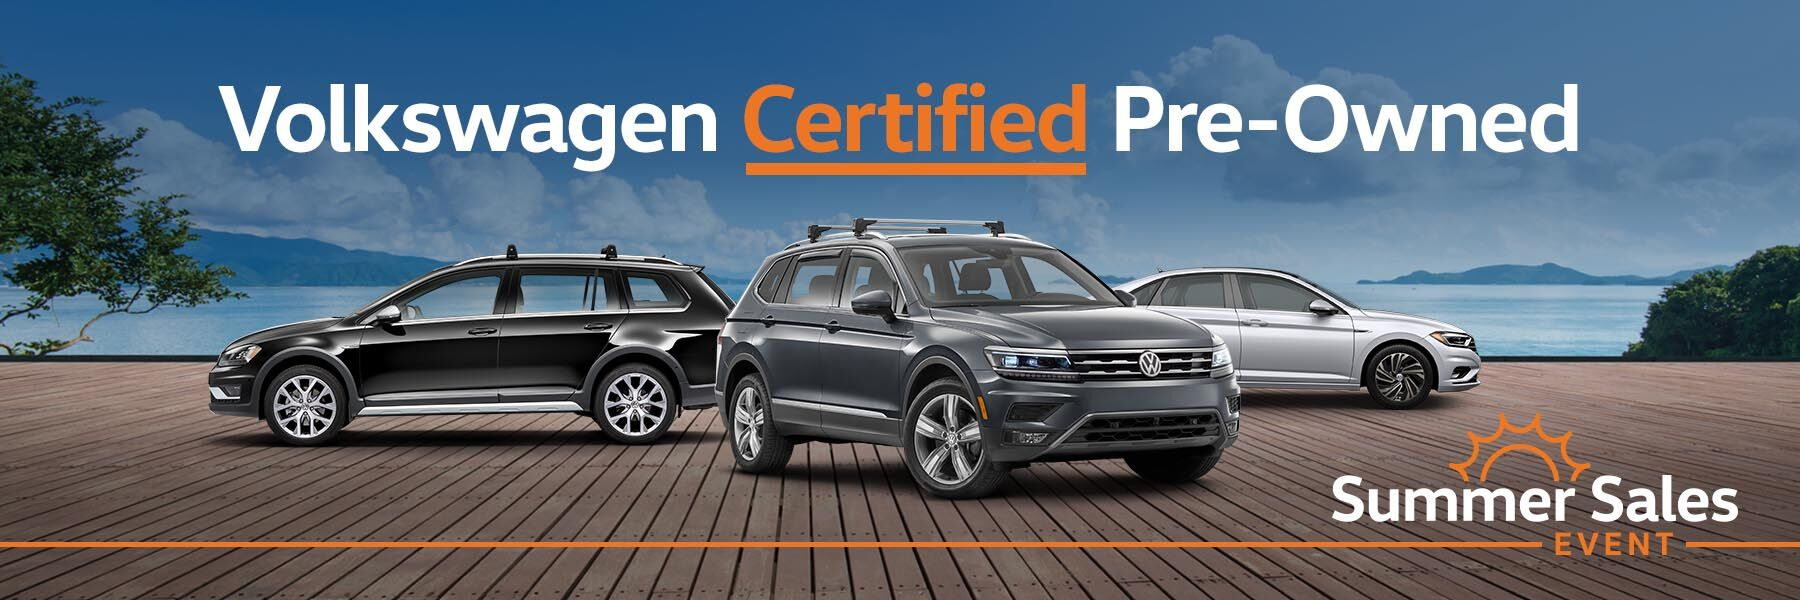 Volkswagen Certified Pre-Owned in Sumter, SC